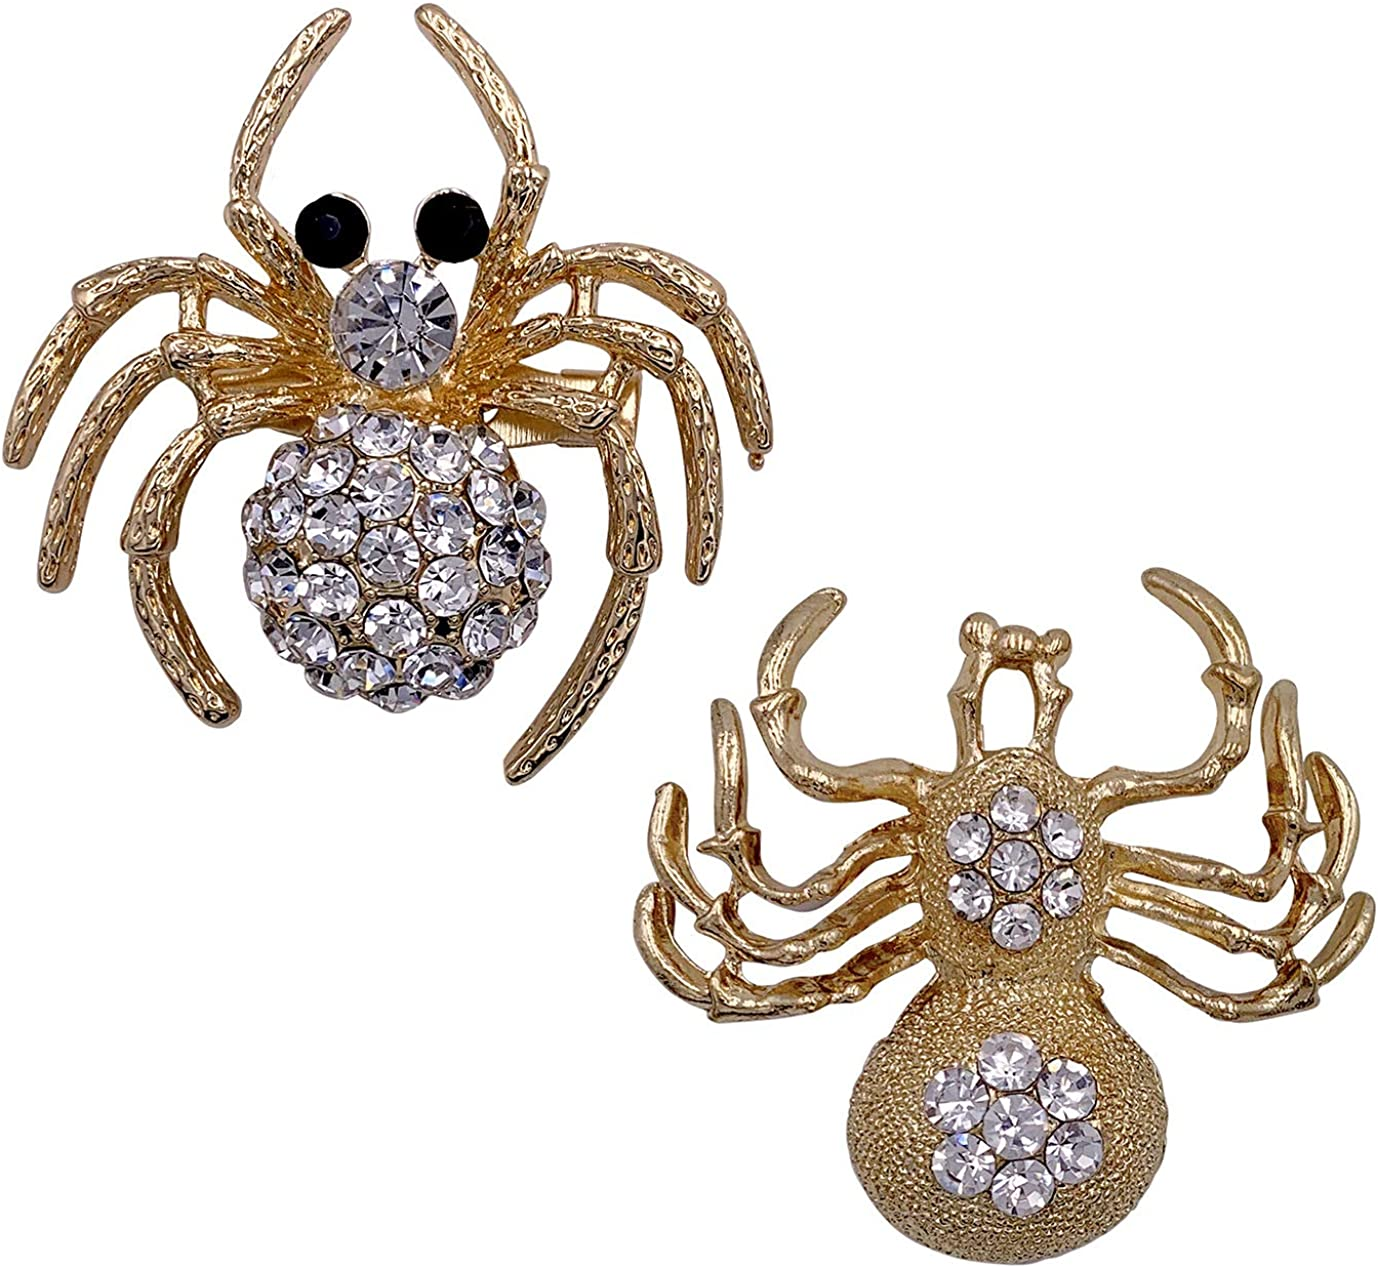 SELOVO Spider Clear White Crystal Brooch Pin 2 Pcs Jewelry Set Gold Tone